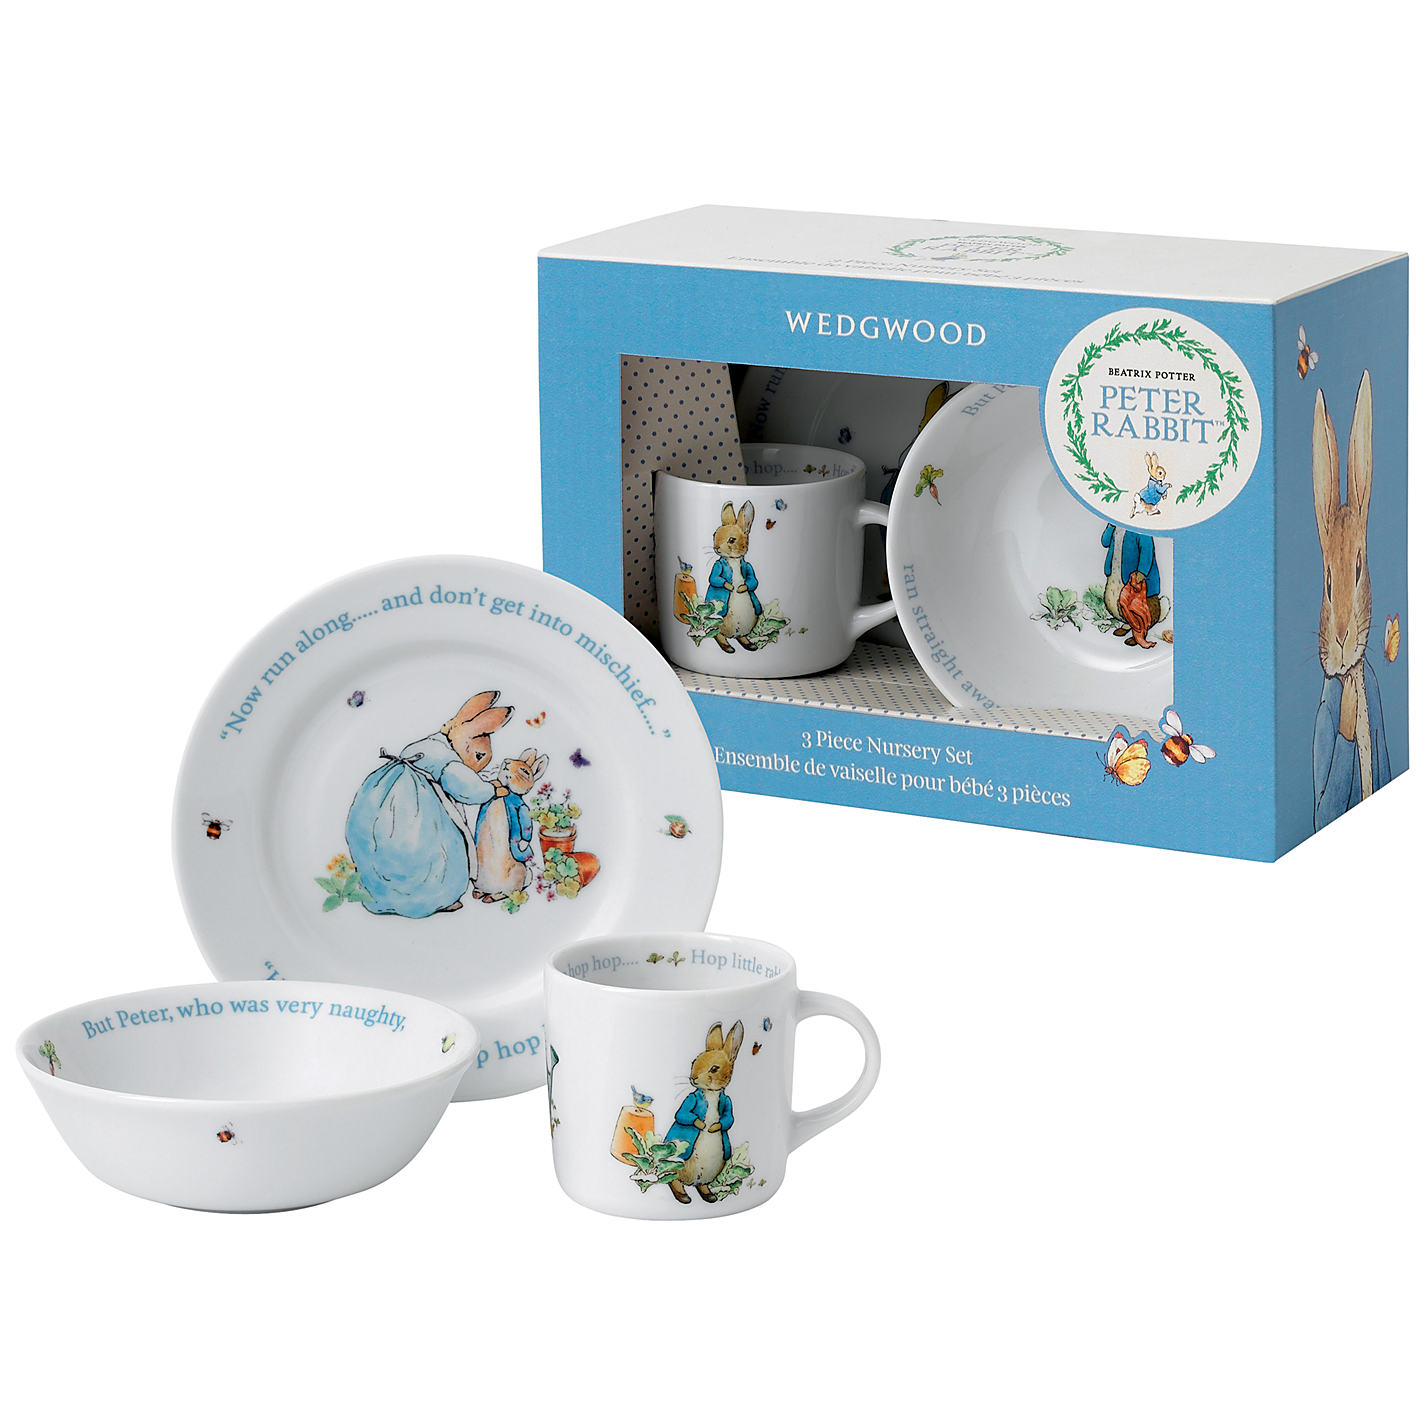 Beatrix Potter Peter Rabbit Wedgwood 3 Piece Nursery Set Online At Johnlewis